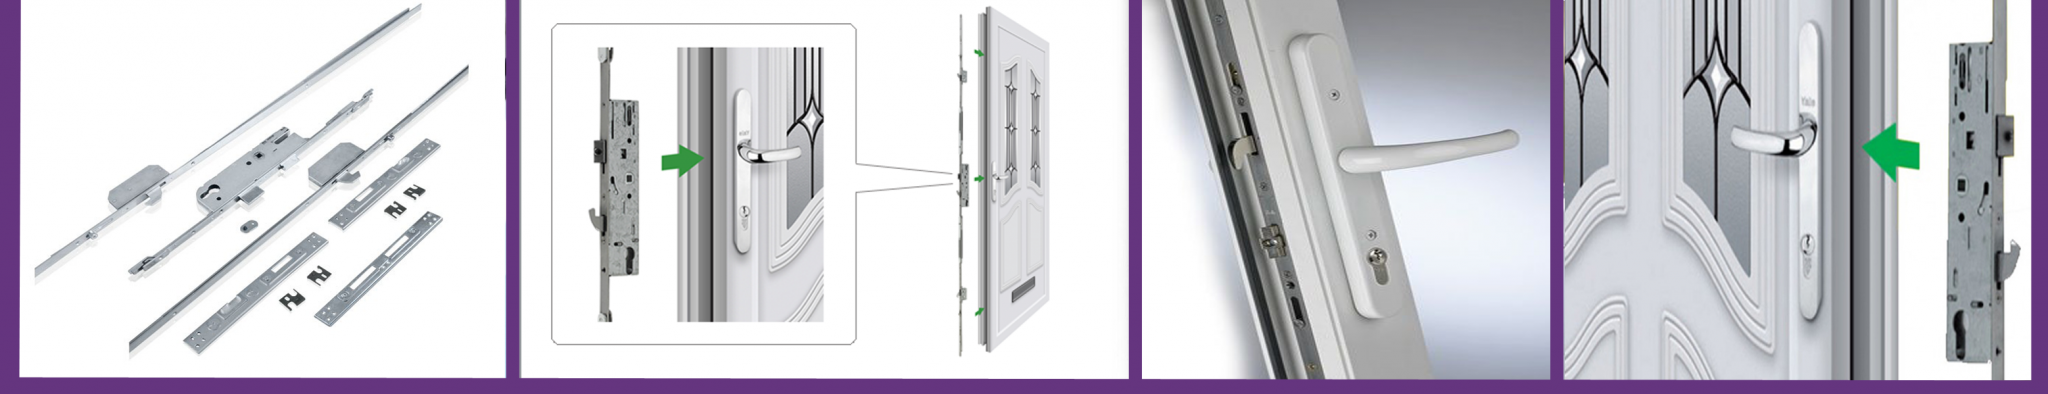 We supply and fit all types of window mechanisms and gearboxes. An espagnolette locking system, sometimes called an espag, is the flat metal strip which runs up the locking side of a window and moves when you turn the handle.